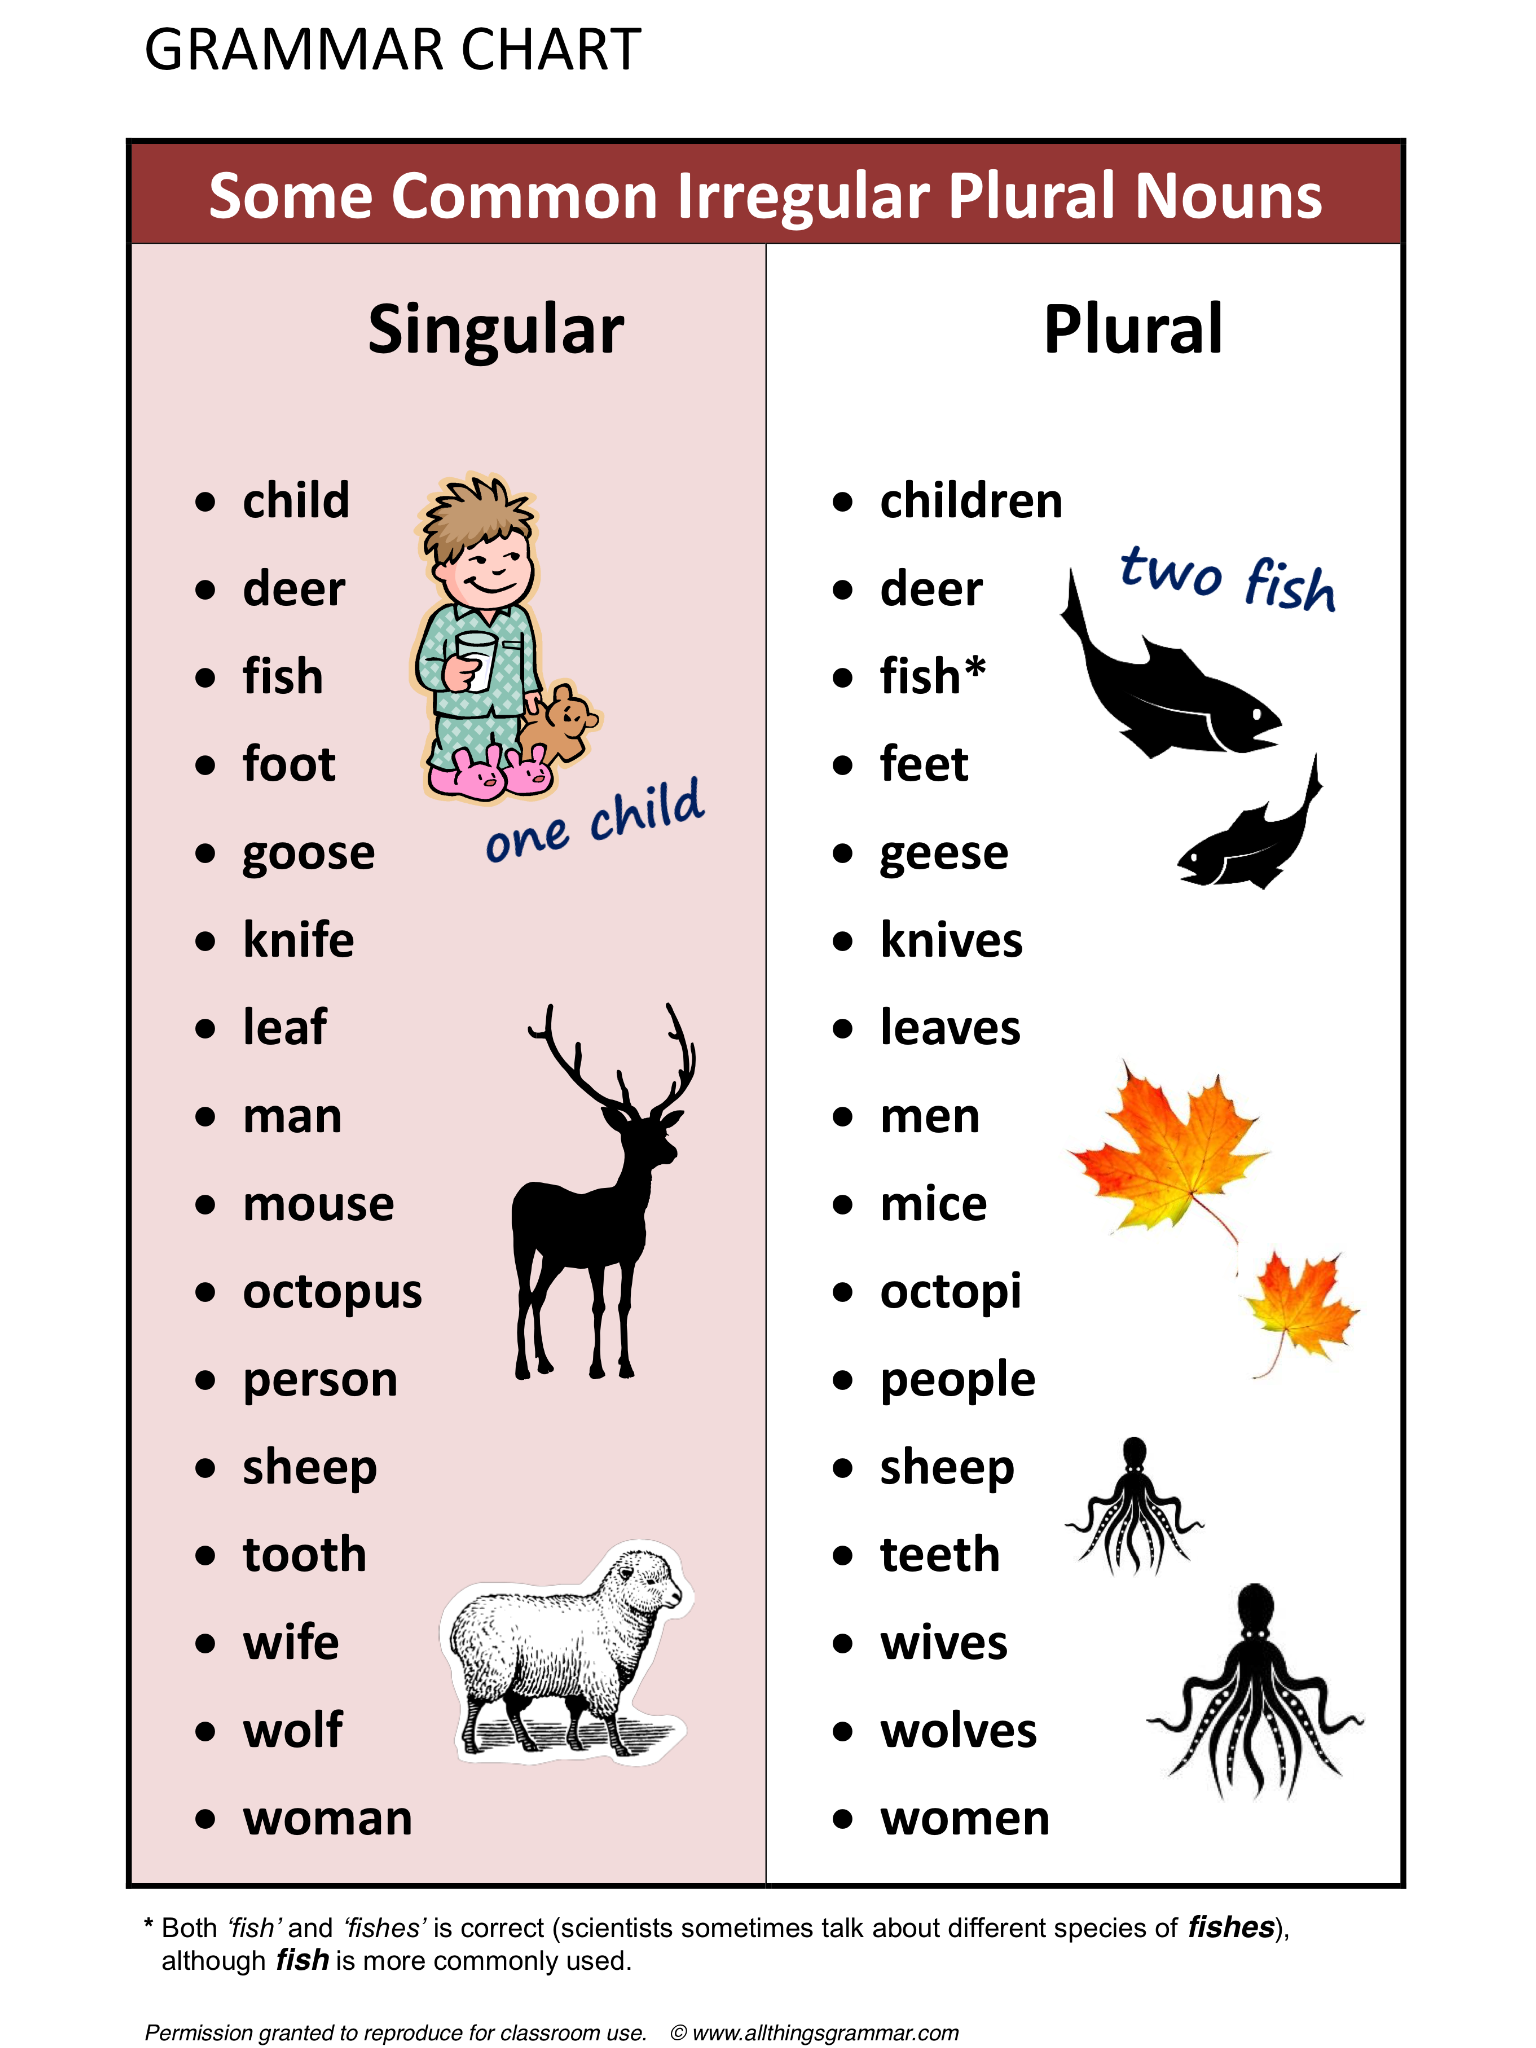 English Grammar Some Common Irregular Plural Nouns